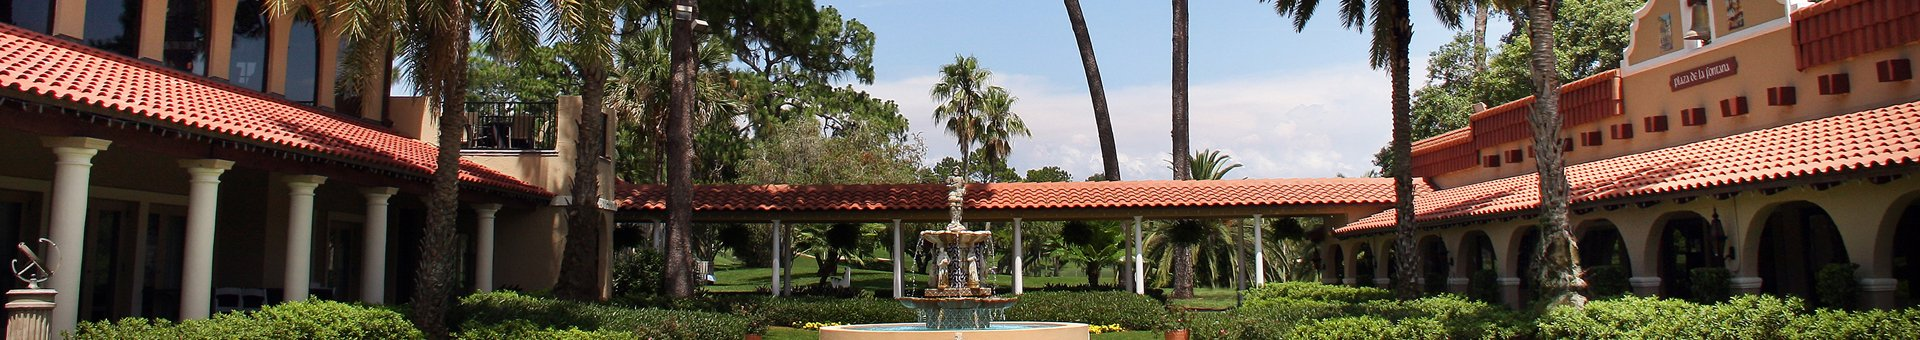 la fontana mission inn resort & club